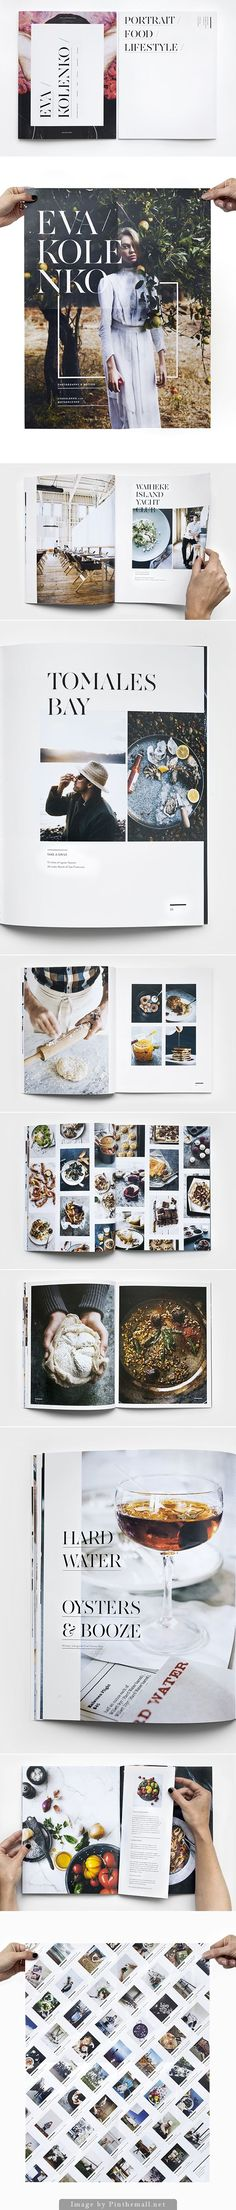 좋은 디자인에 쓰이는 영문 서체들 : 네이버 블로그 Want a design like this? Visit our website at www.firethorne.org! #magazines #zine #journal #design